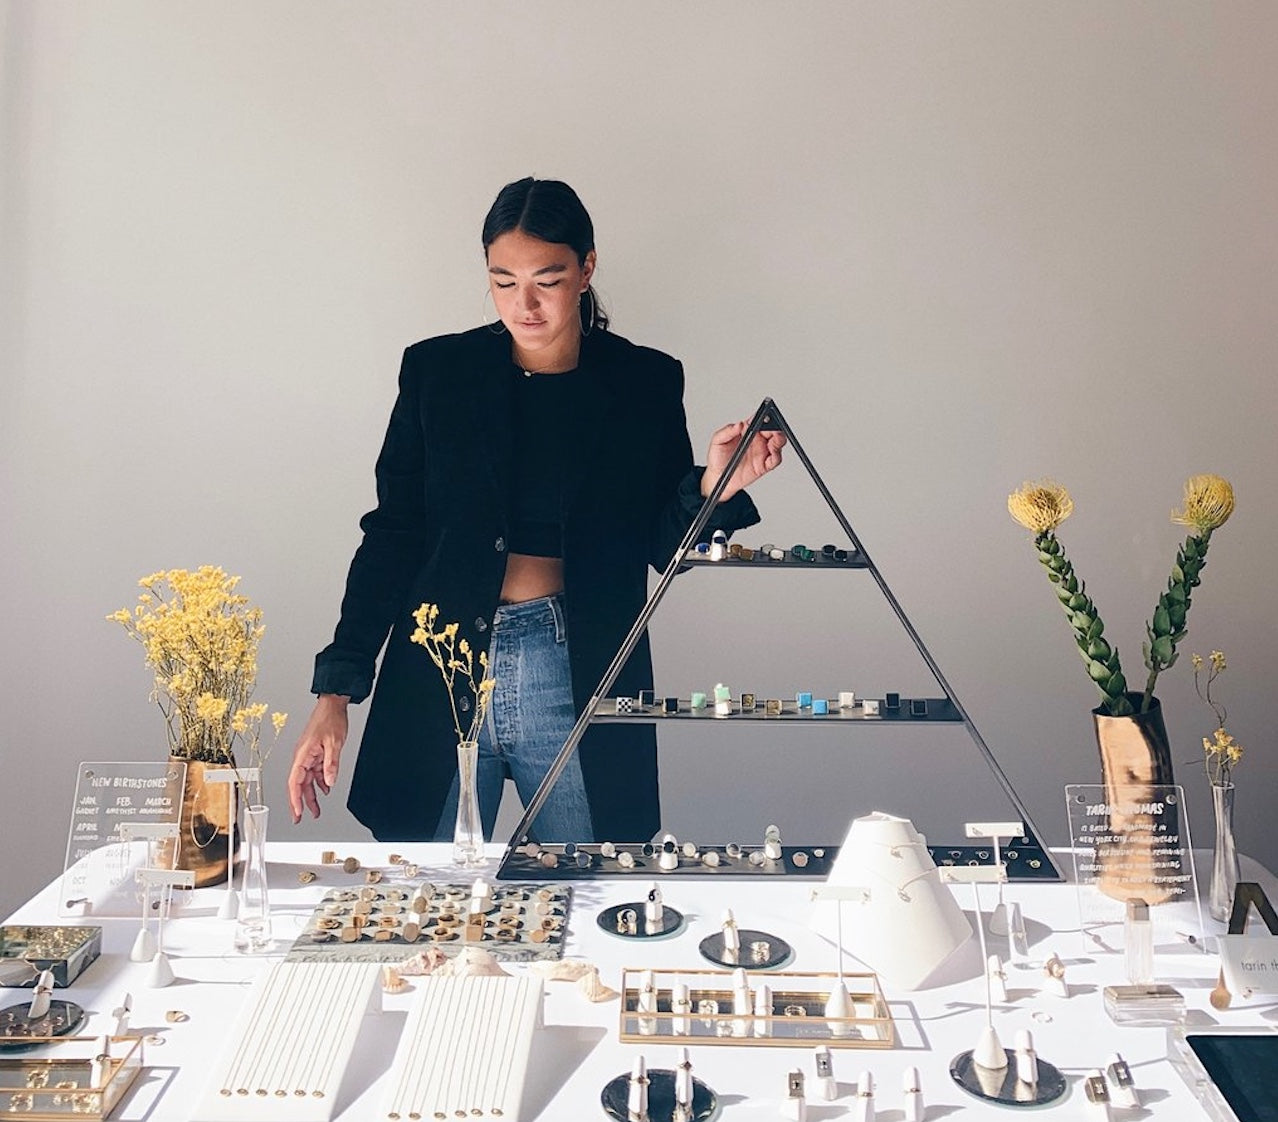 Artist Tarin Thomas standing behind a display table arranged with jewelry